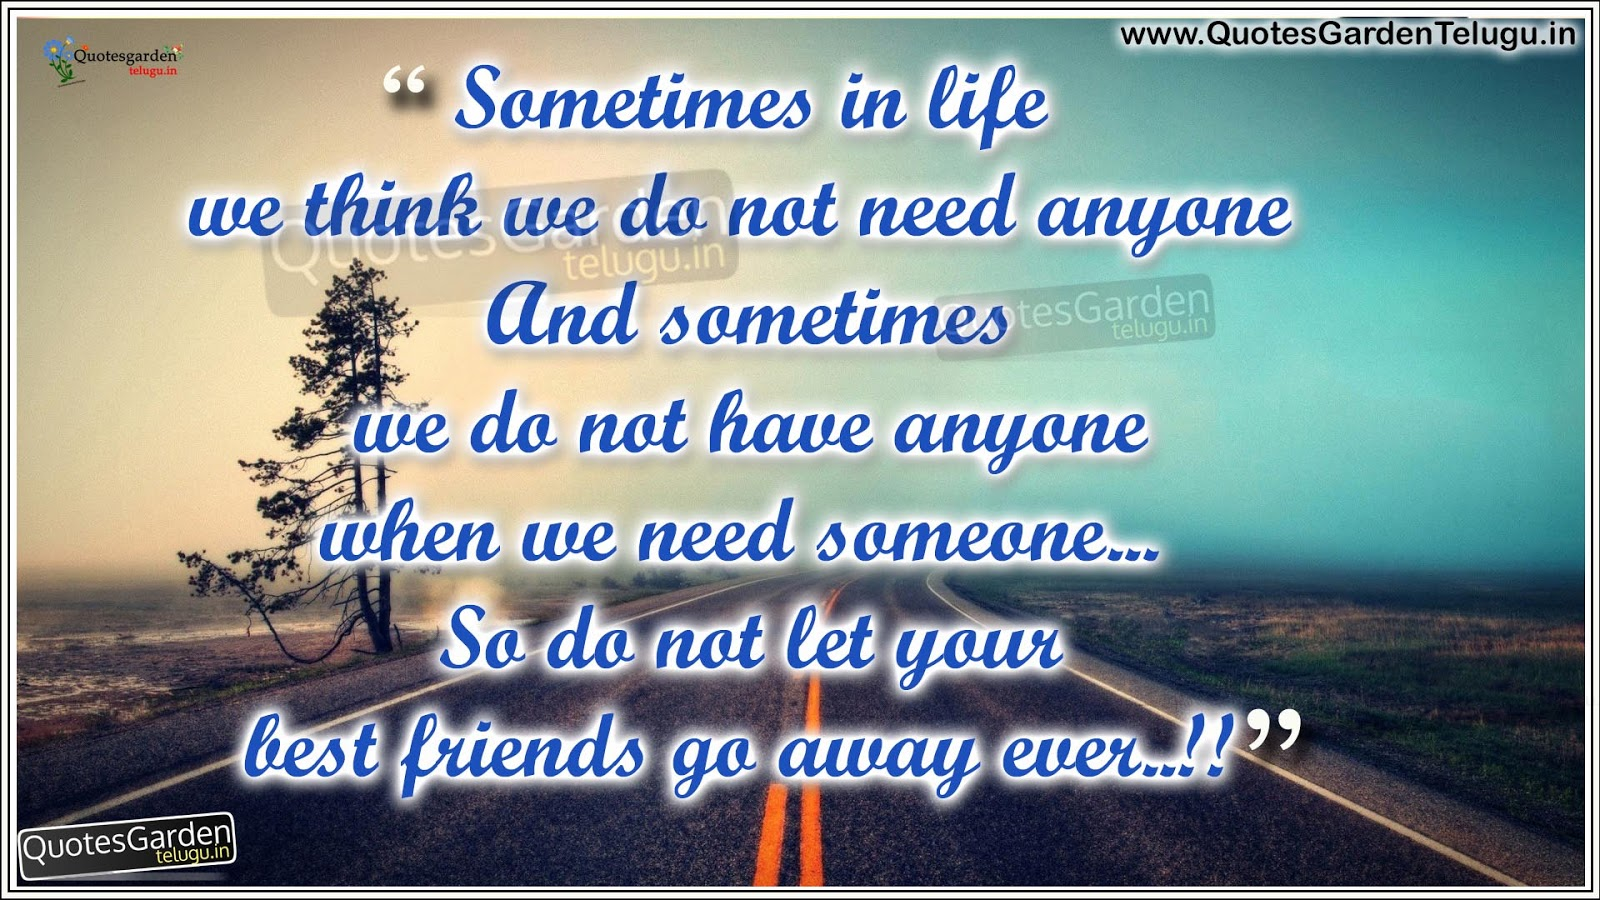 Heart Touching Life Quotes About Friendship Quotes Garden Telugu